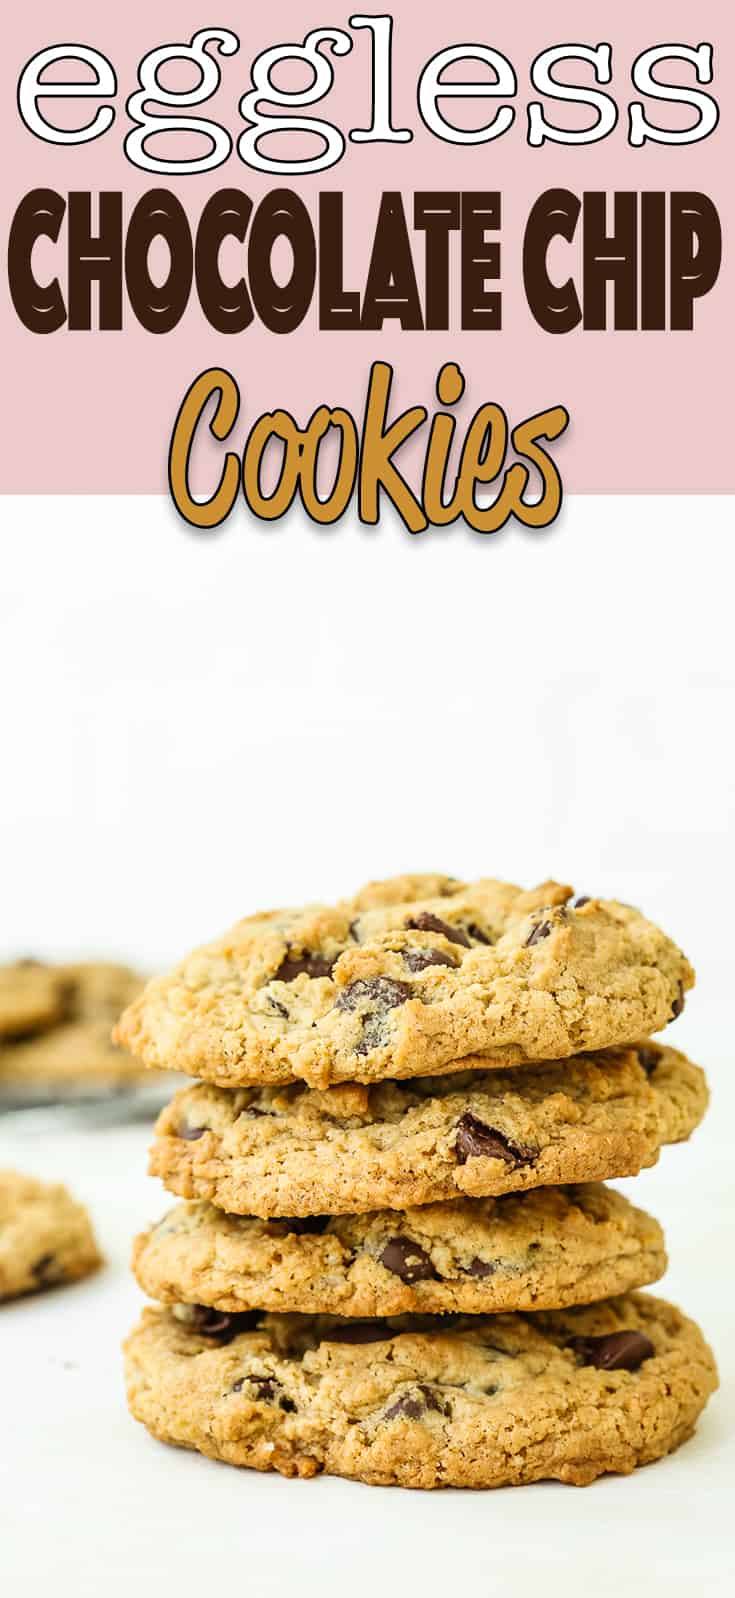 These are THE BEST Eggless Chocolate Chip Cookies Ever!! With a slightly crispy outside and wonderfully soft and chewy inside, these cookies are heaven for any cookie lover. #recipe #eggless #eggfree #egglessbaking #cookies #chocolatechip #easy #christmascookies